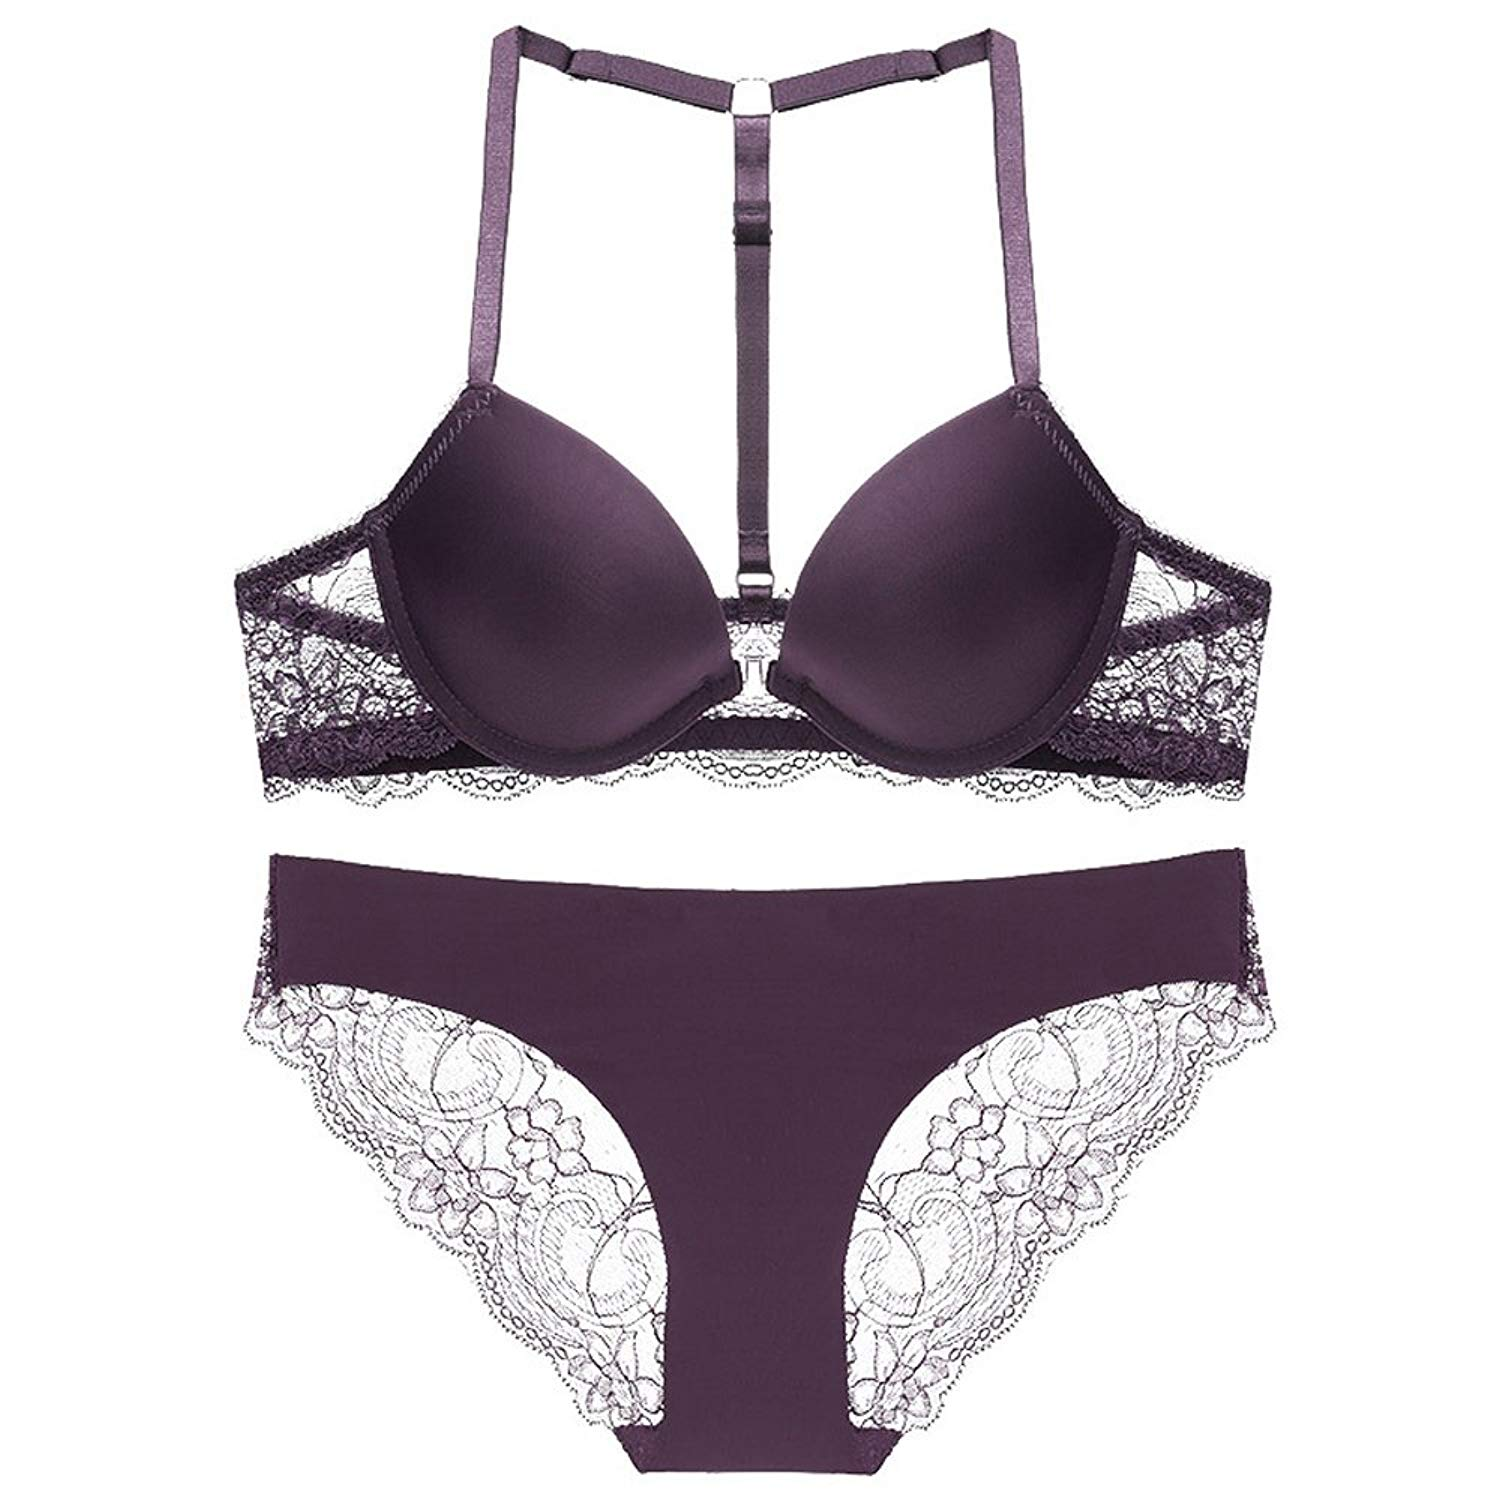 4b6d0a757e6 Get Quotations · Front Closure T Back Strap Sexy Lace Push up Seamless Lingerie  Bra Panty Set